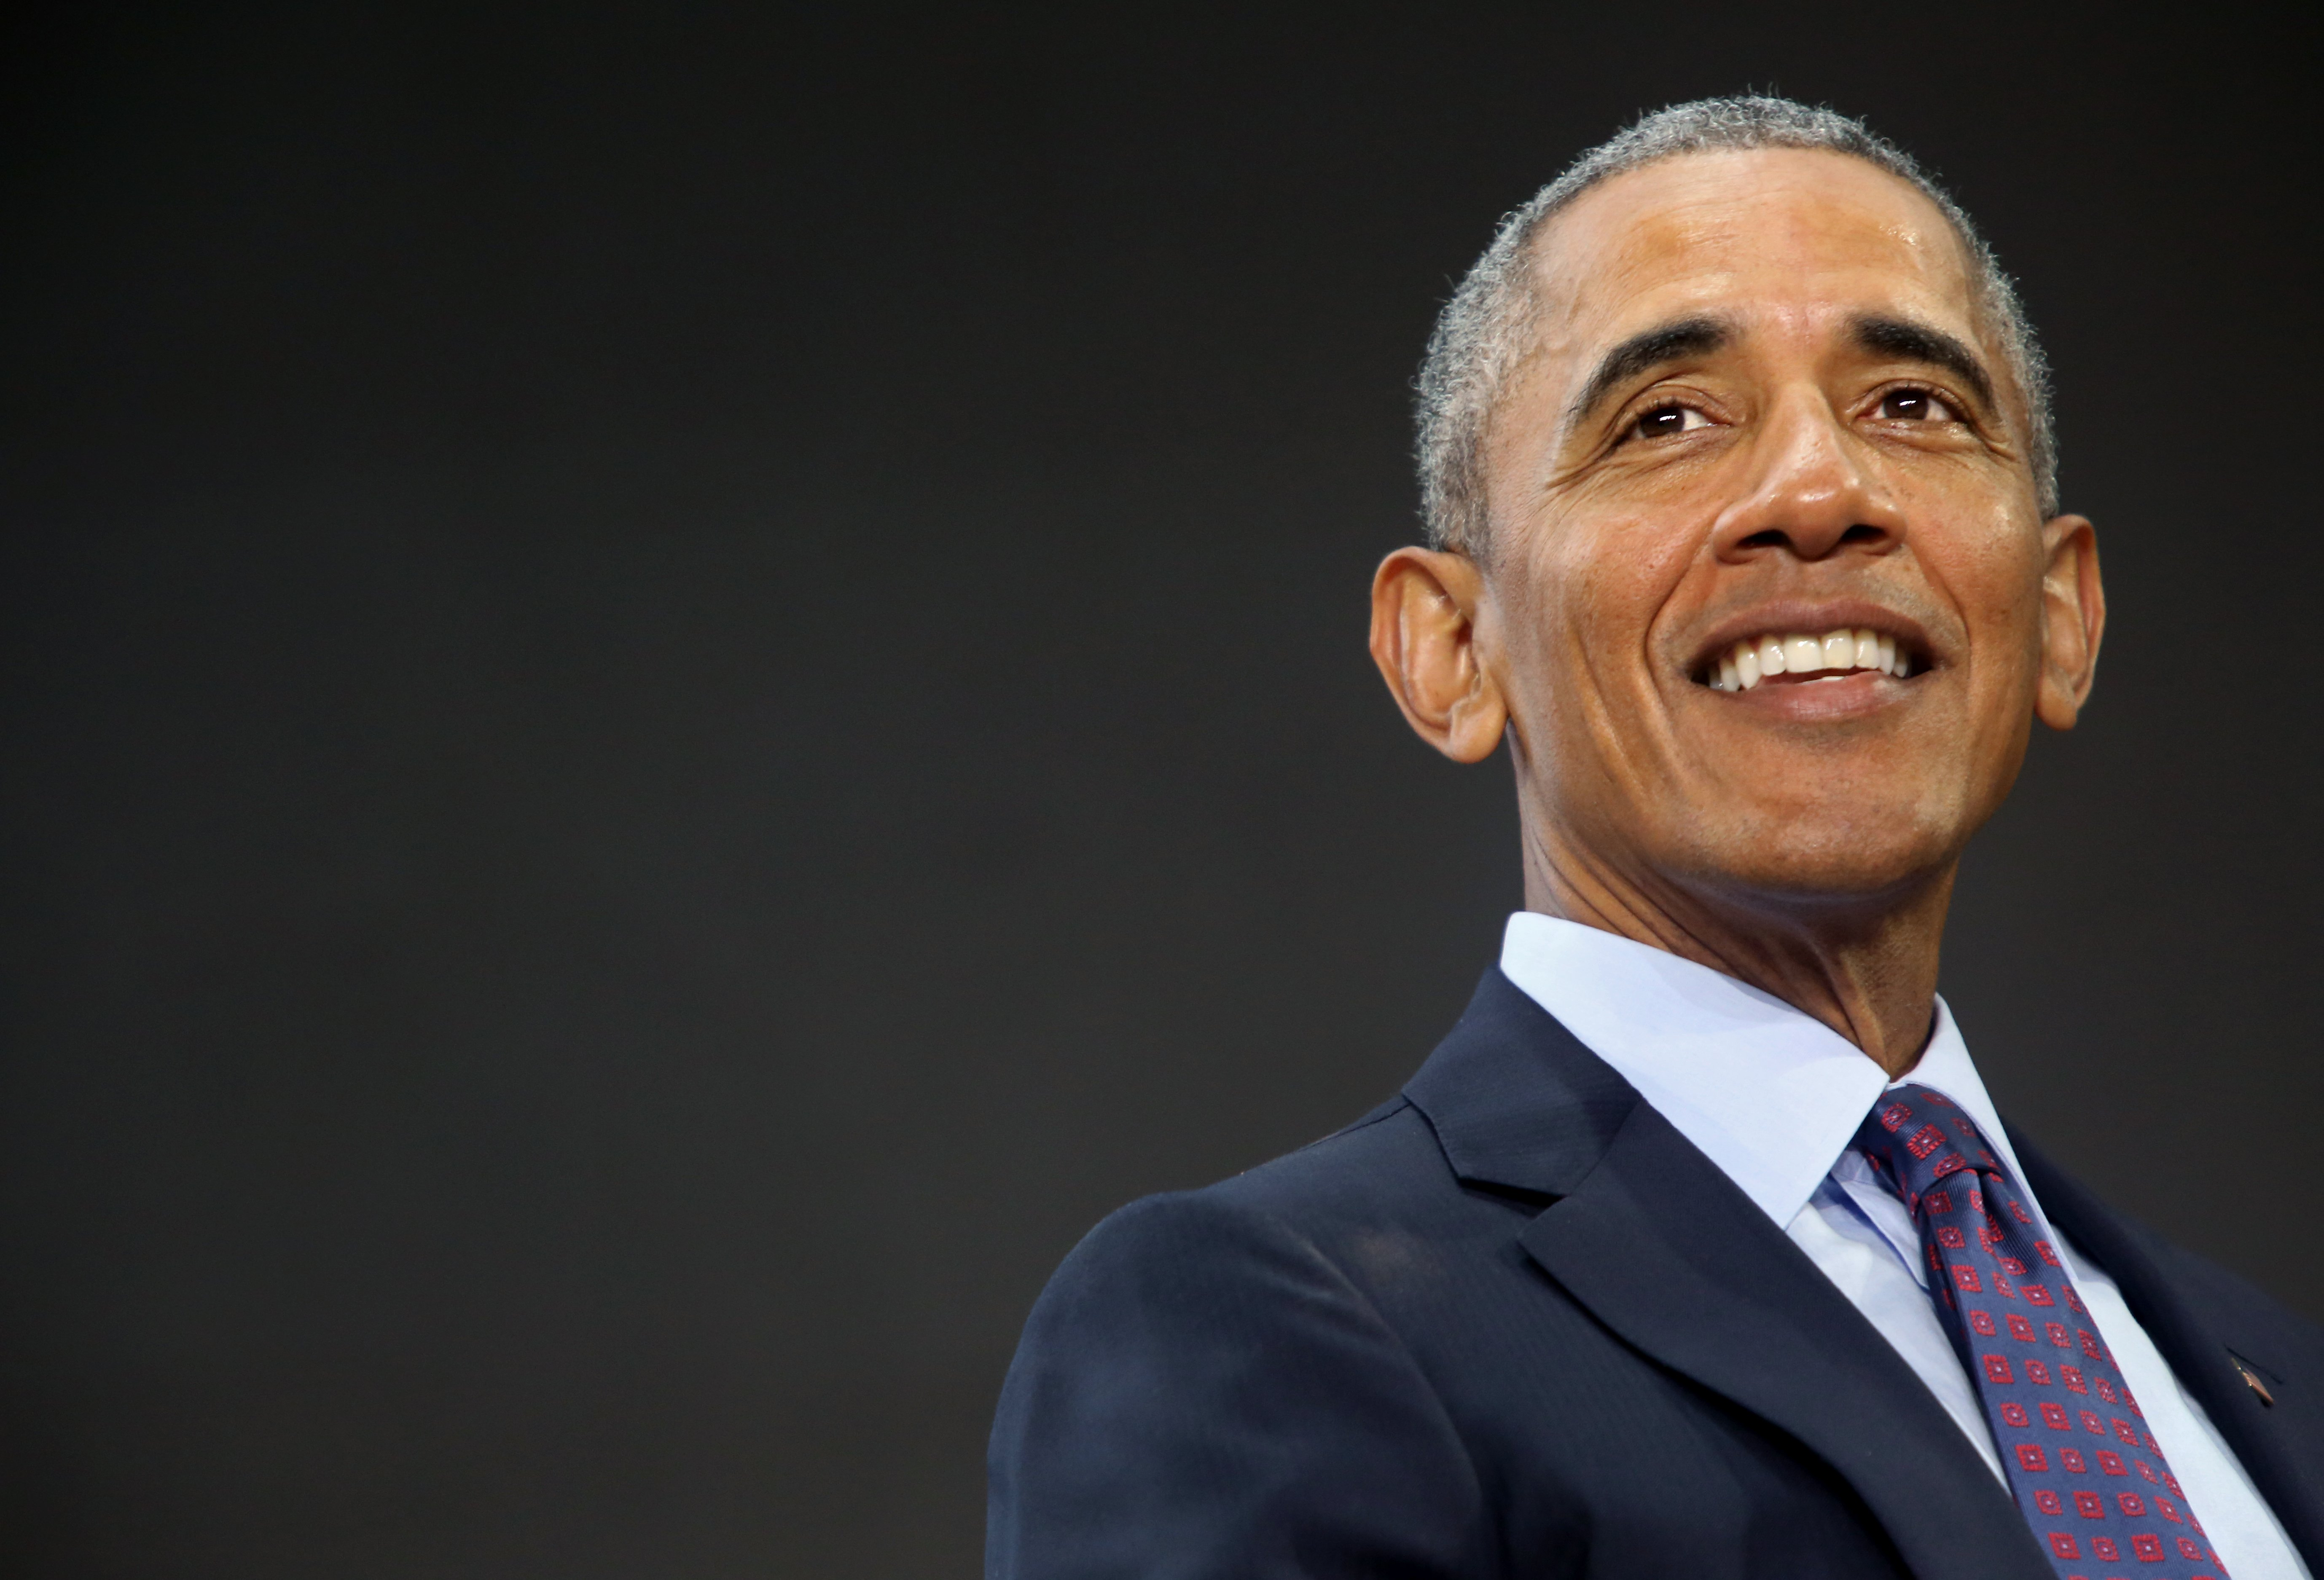 Barack Obama at the Gates Foundation Inaugural Goalkeepers Event | Photo: Getty Images